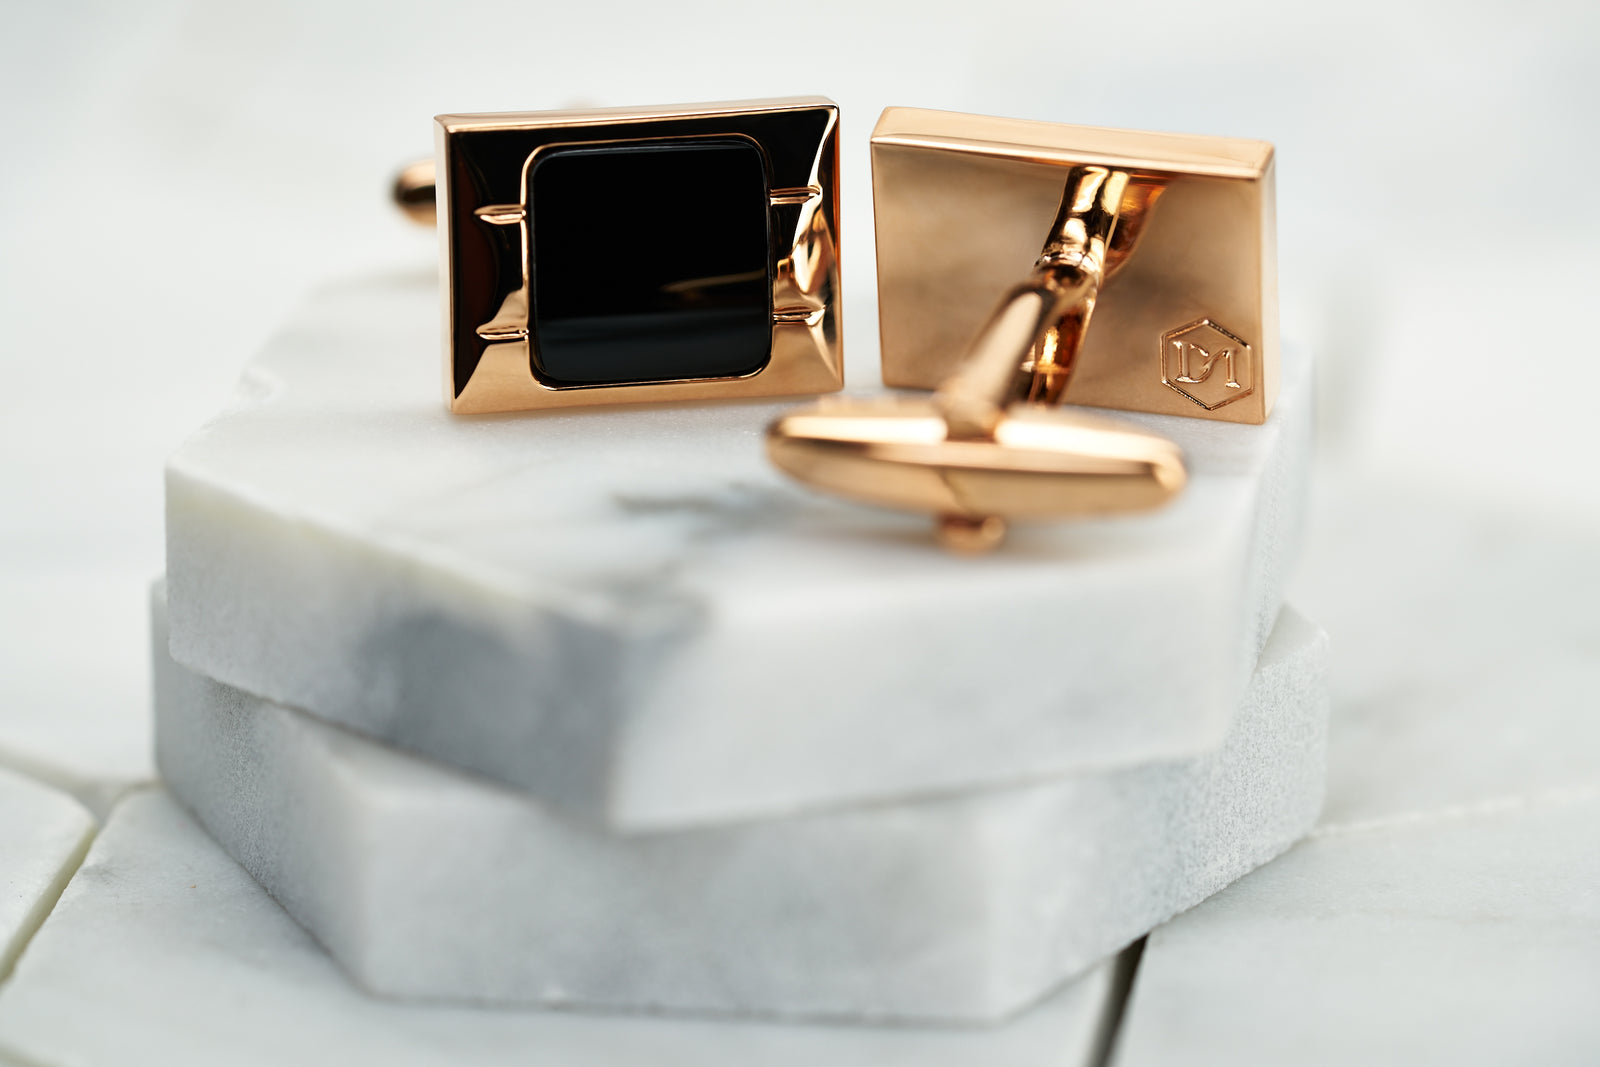 A product image featuring a pair of rose gold cufflinks by Dear Martian. The image depicts the front side, which has a solid black enameled center and the back of the cufflink, which shows the DM hexagon logo.